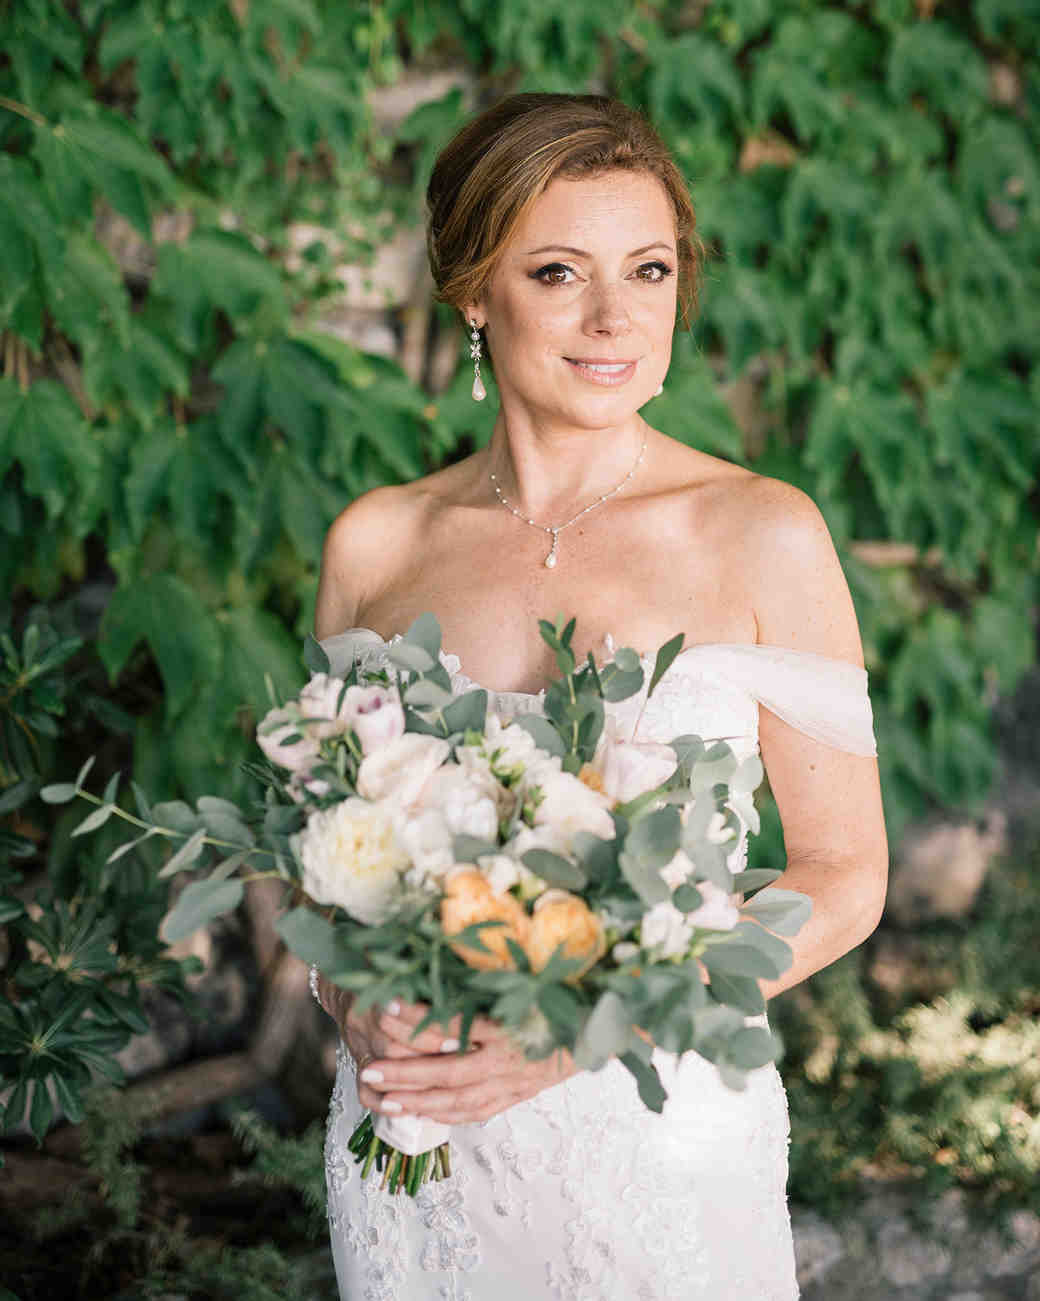 cara david wedding bride in front of greenery